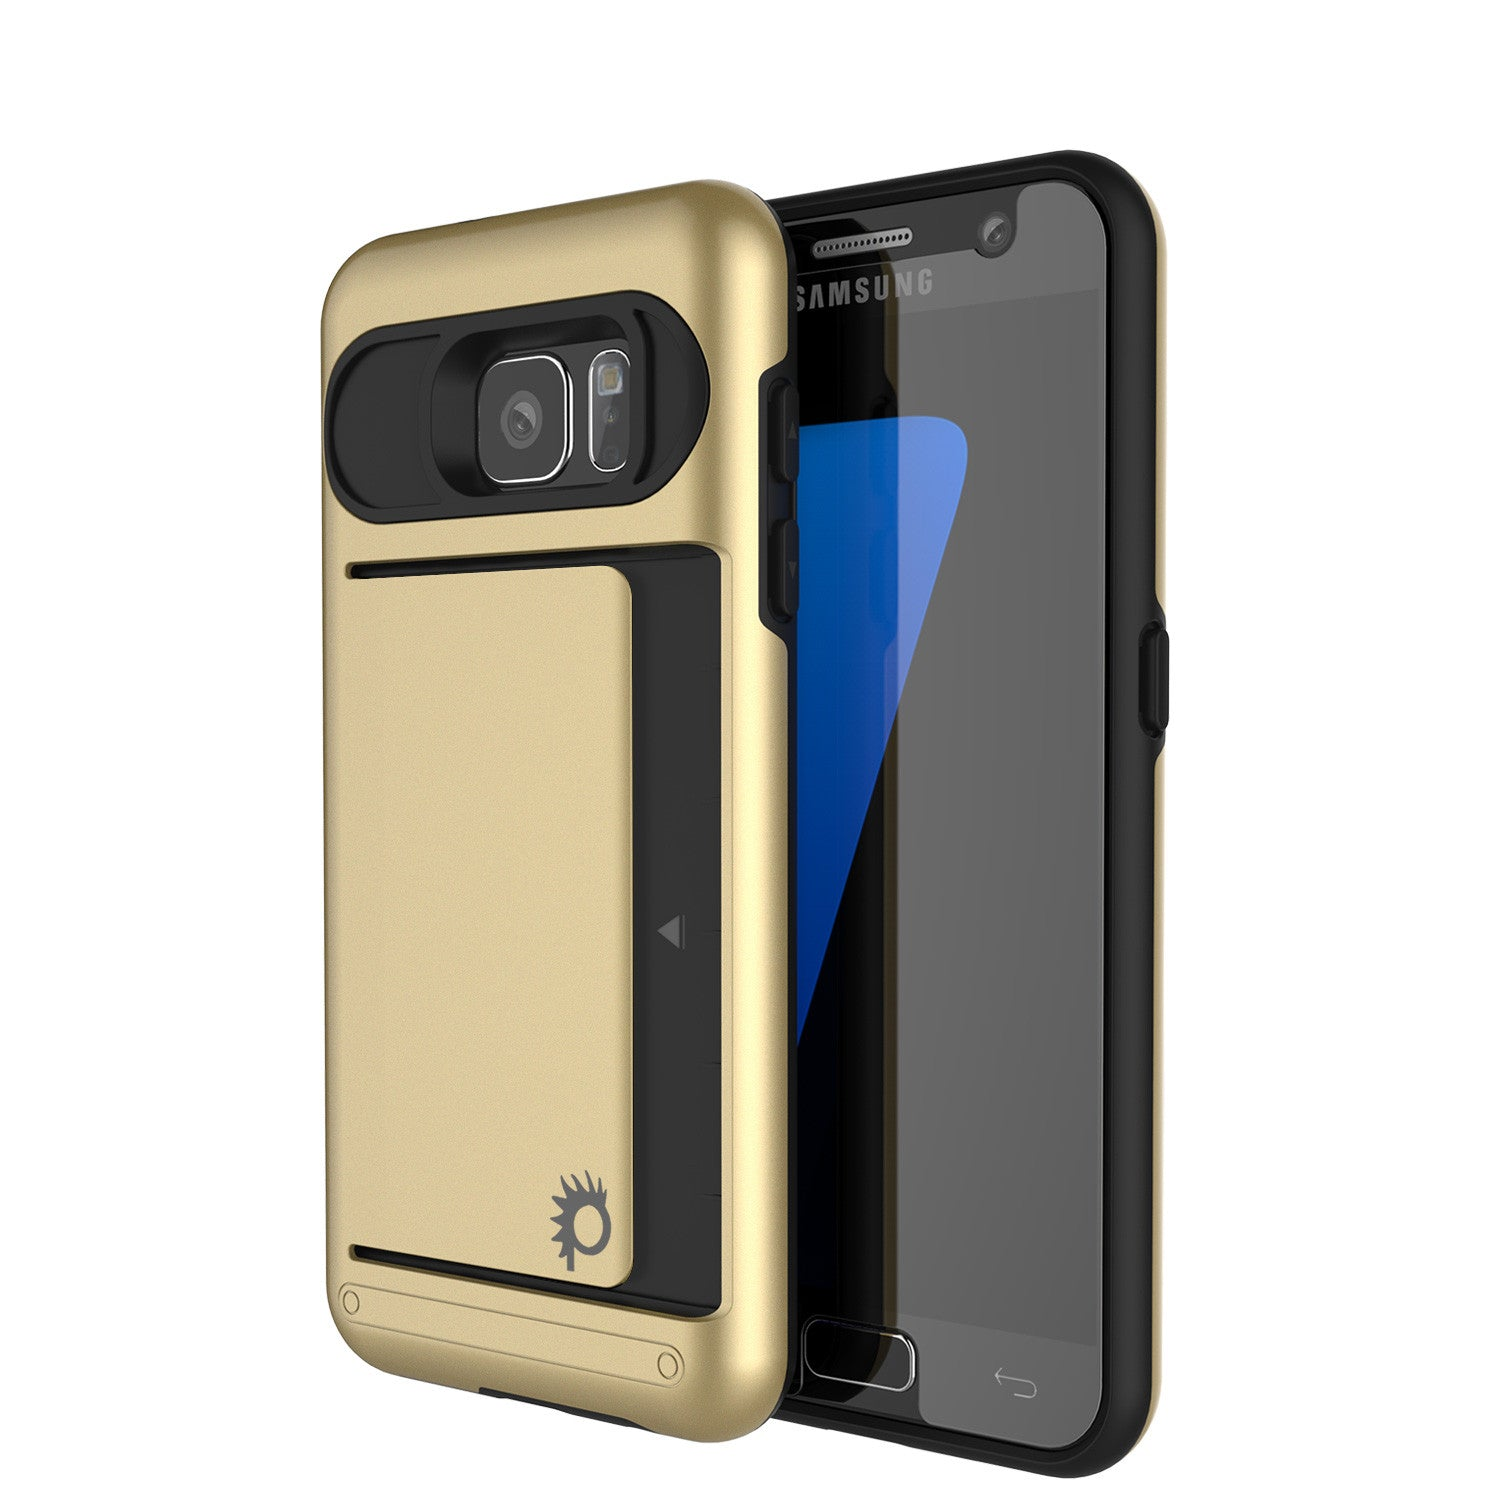 Galaxy S7 EDGE Case PunkCase CLUTCH Gold Series Slim Armor Soft Cover Case w/ Screen Protector